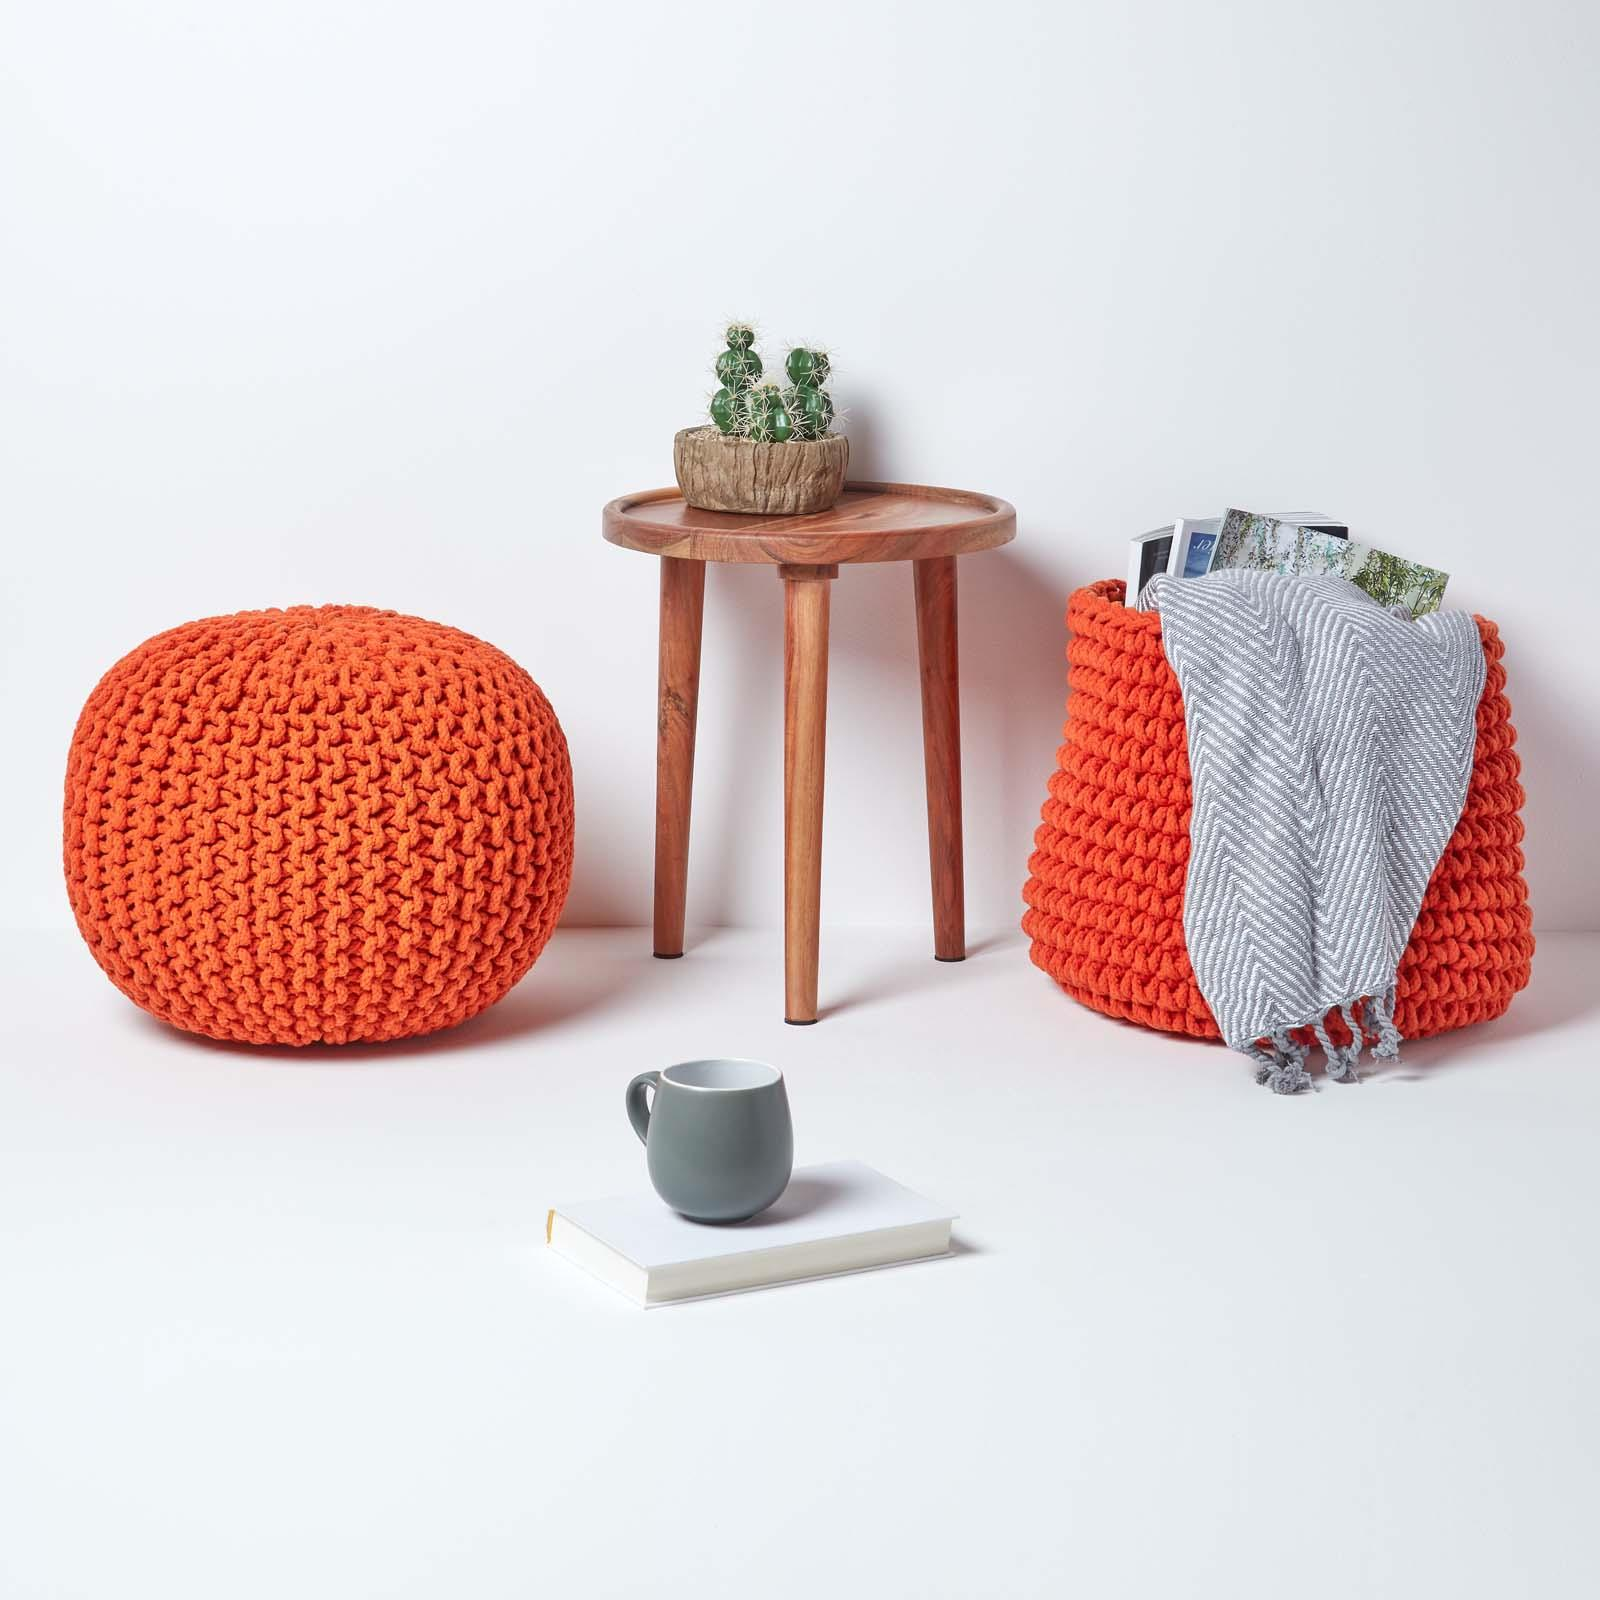 Hand-Knitted-100-Cotton-Pouffes-Round-Sphere-Or-Cube-Square-Chunky-Footstools thumbnail 121